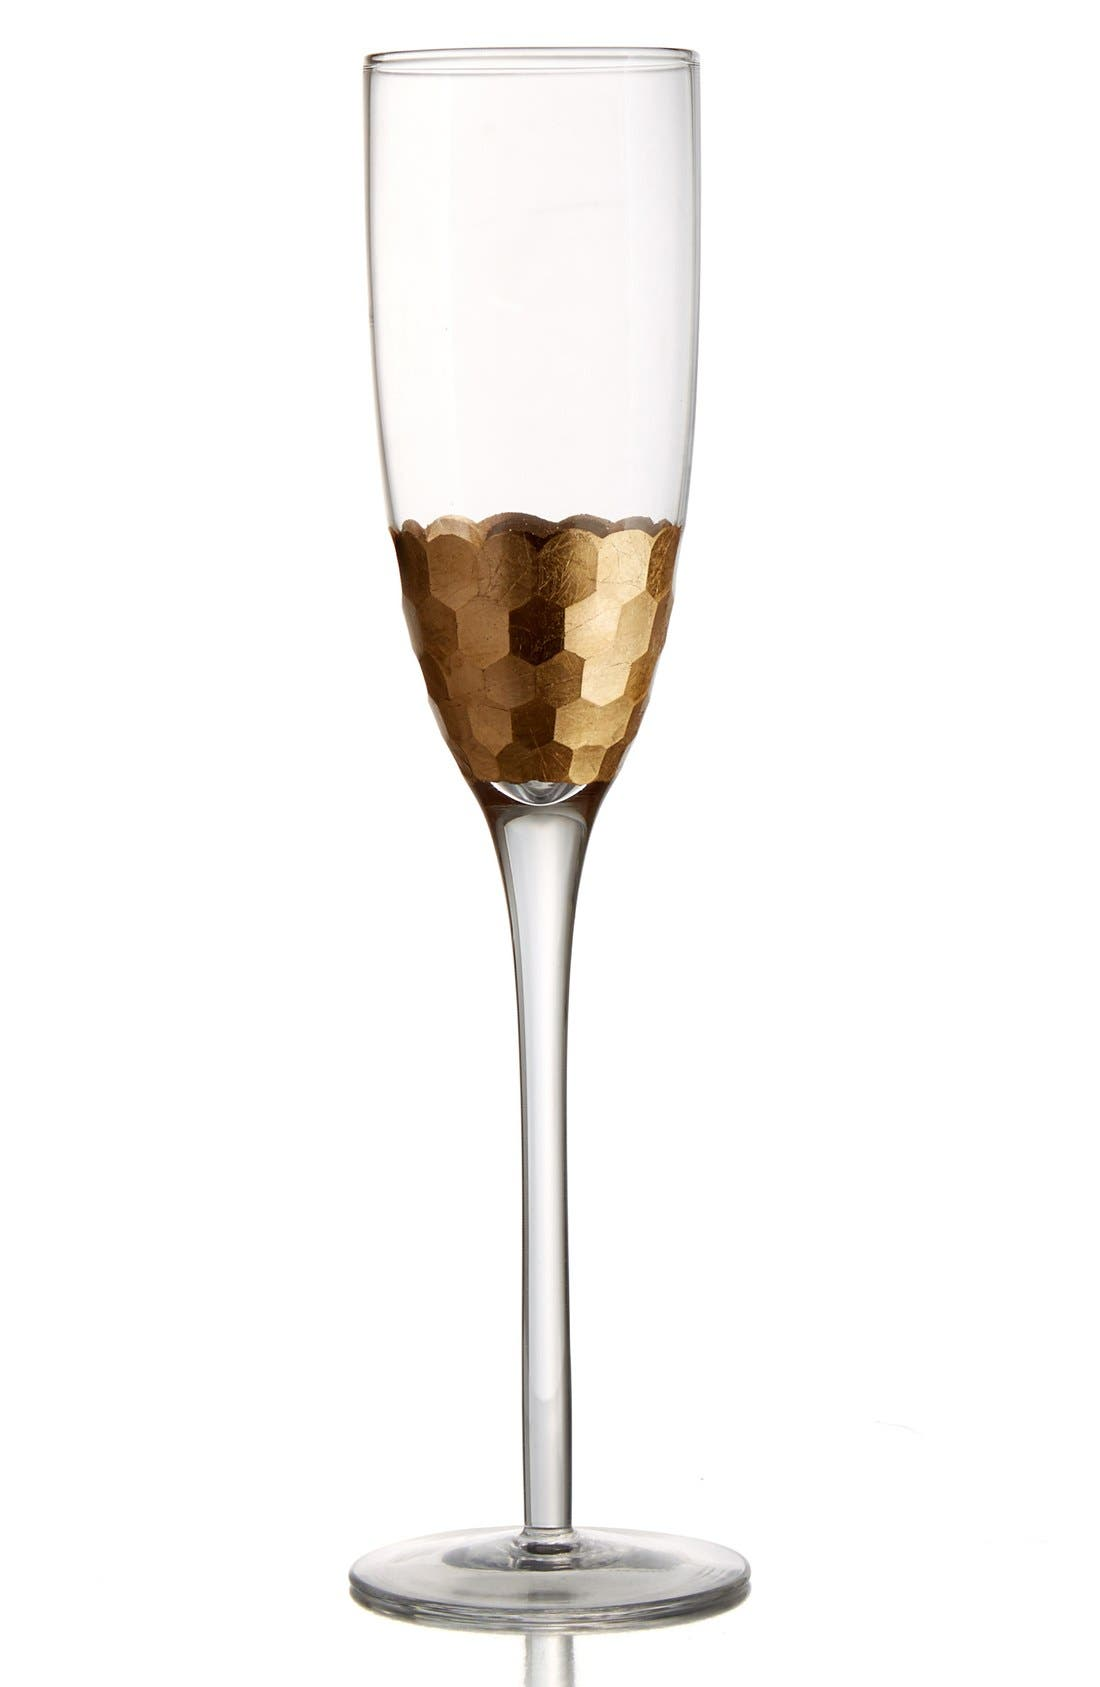 AMERICAN ATELIER 'Daphne' Champagne Flutes